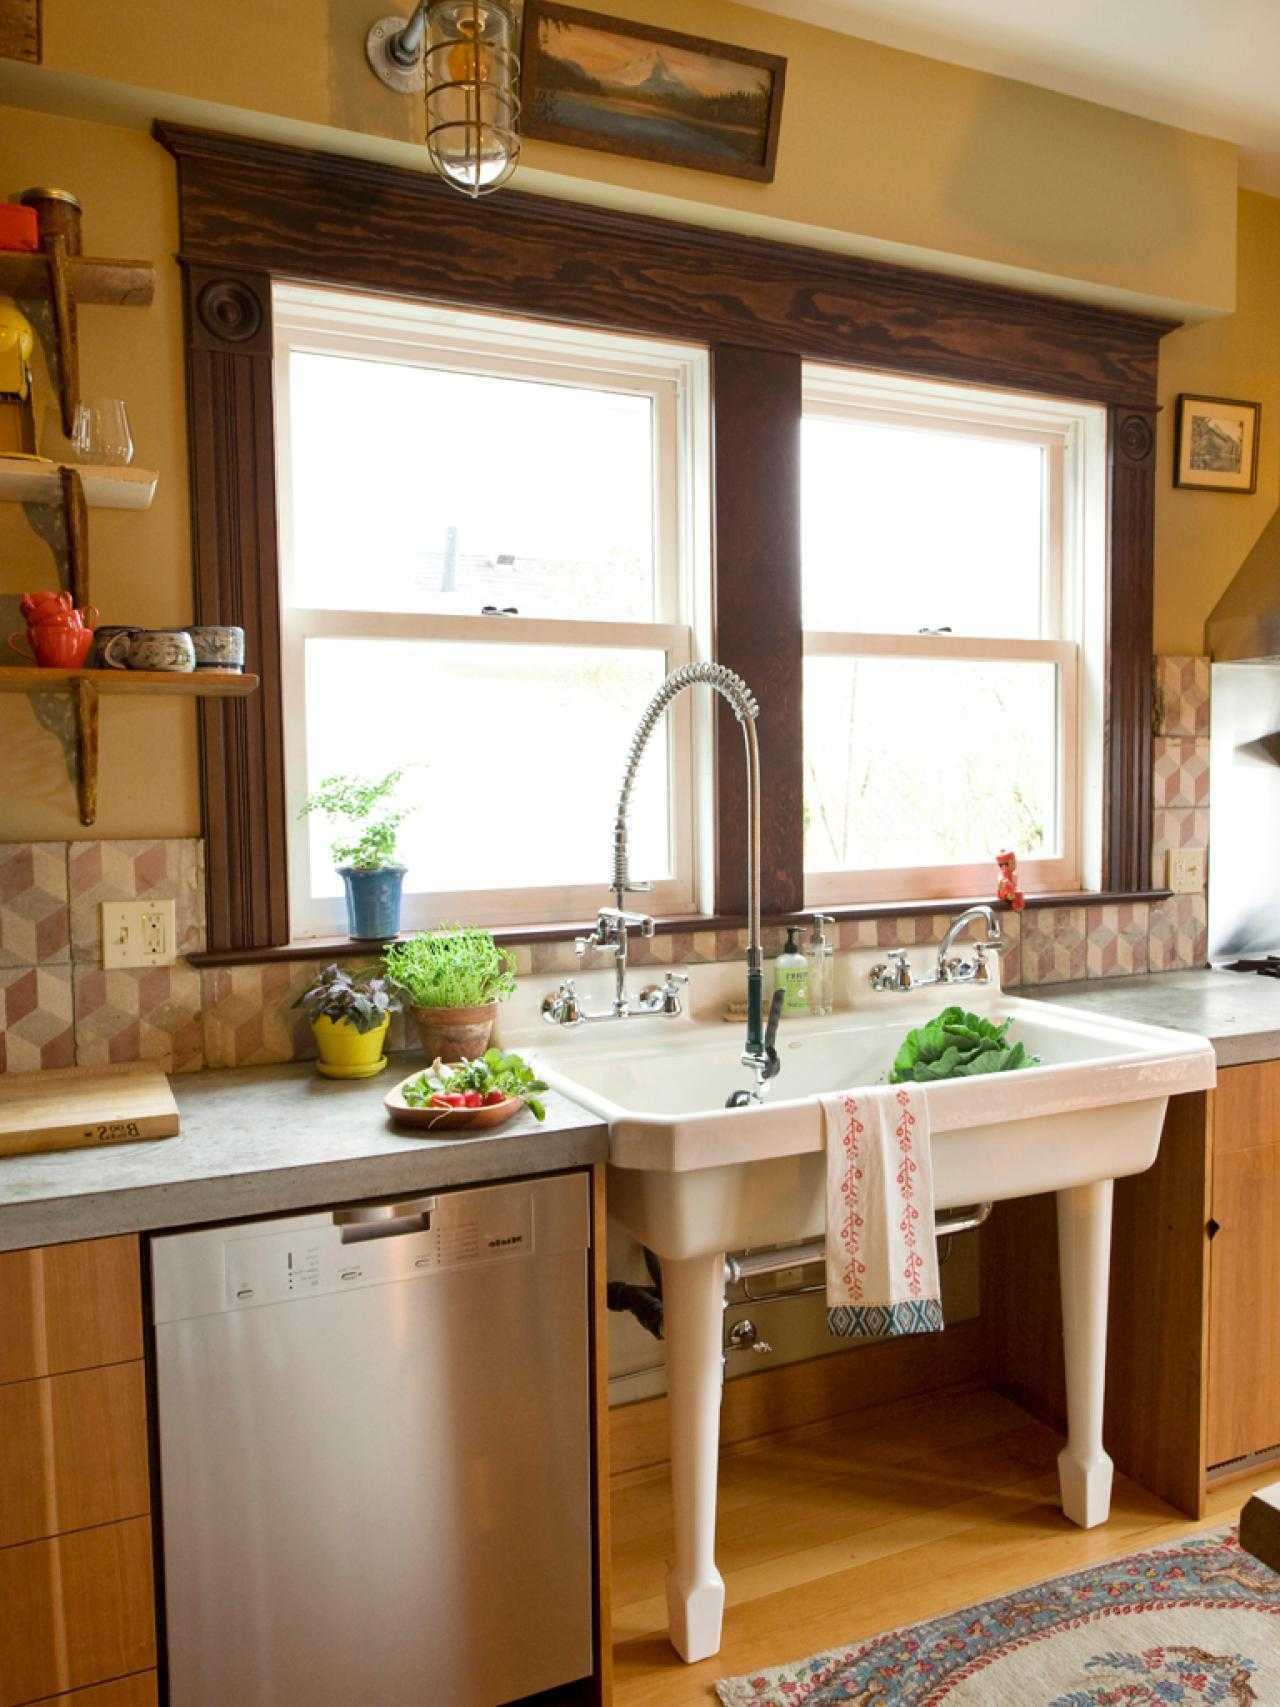 Older Home Kitchen Remodeling Ideas | Roy Home Design on Kitchen Remodeling Ideas  id=88489